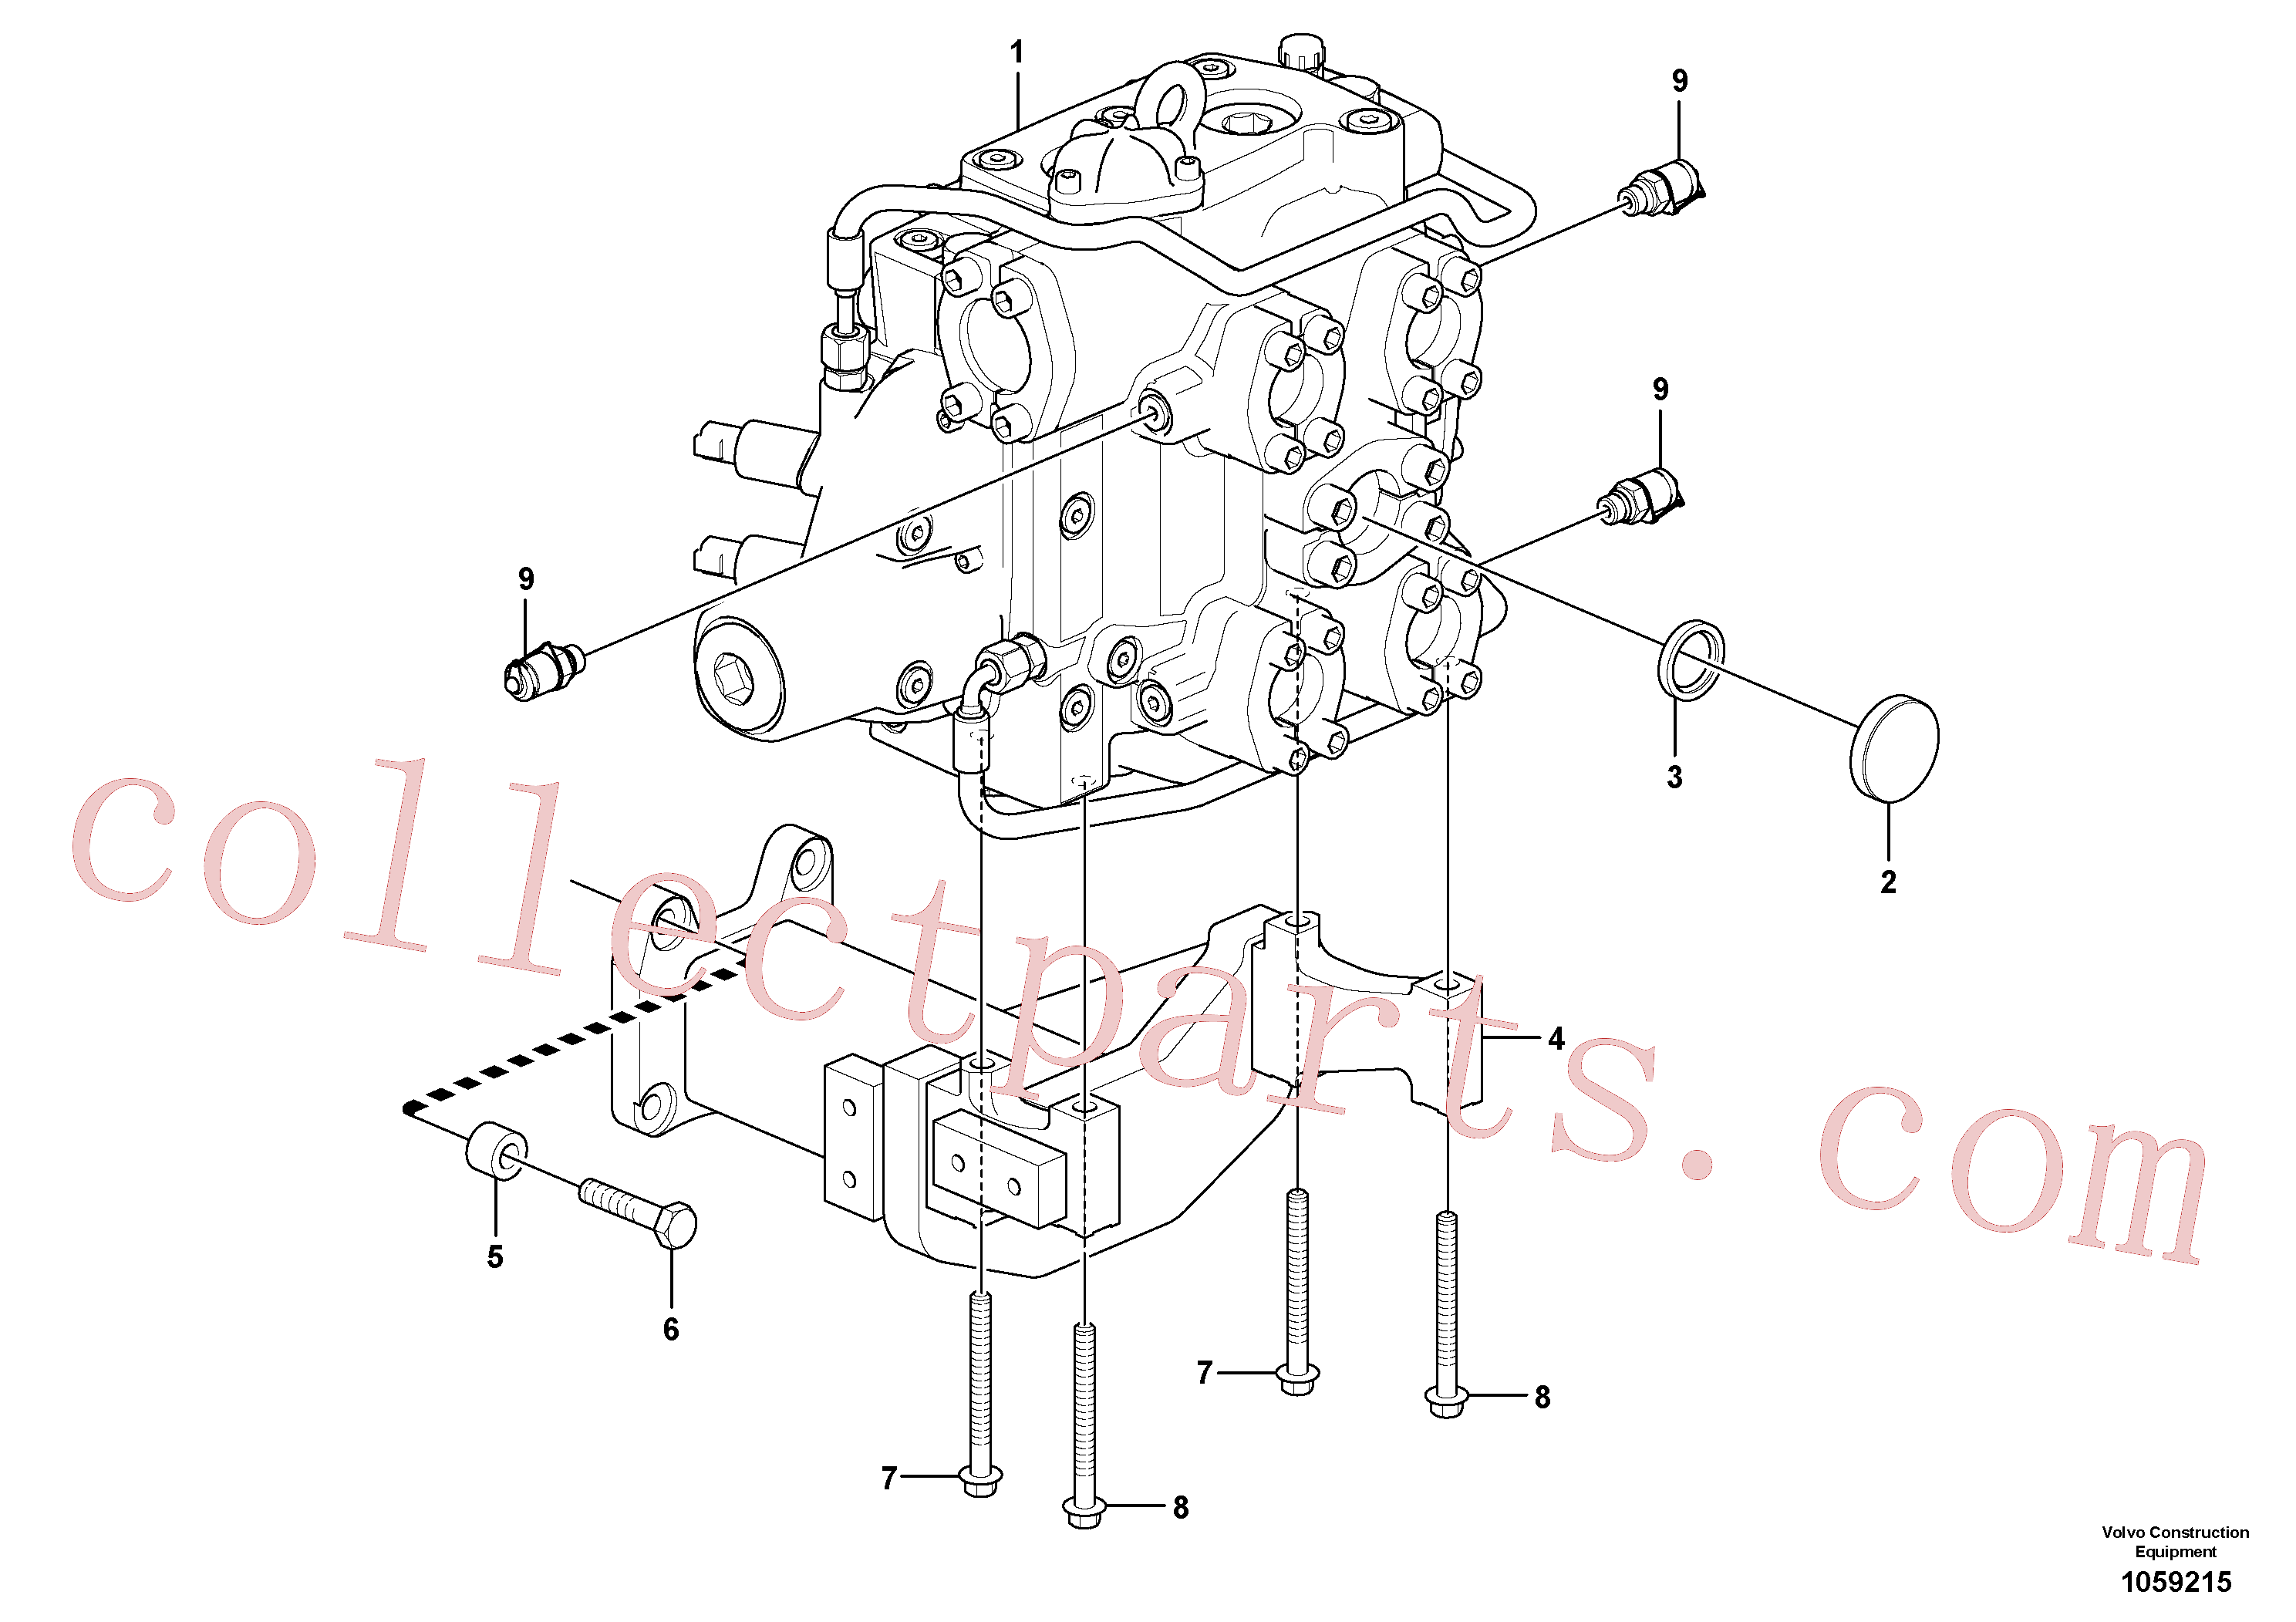 VOE11108798 for Volvo Control valve with fitting parts.(1059215 assembly)